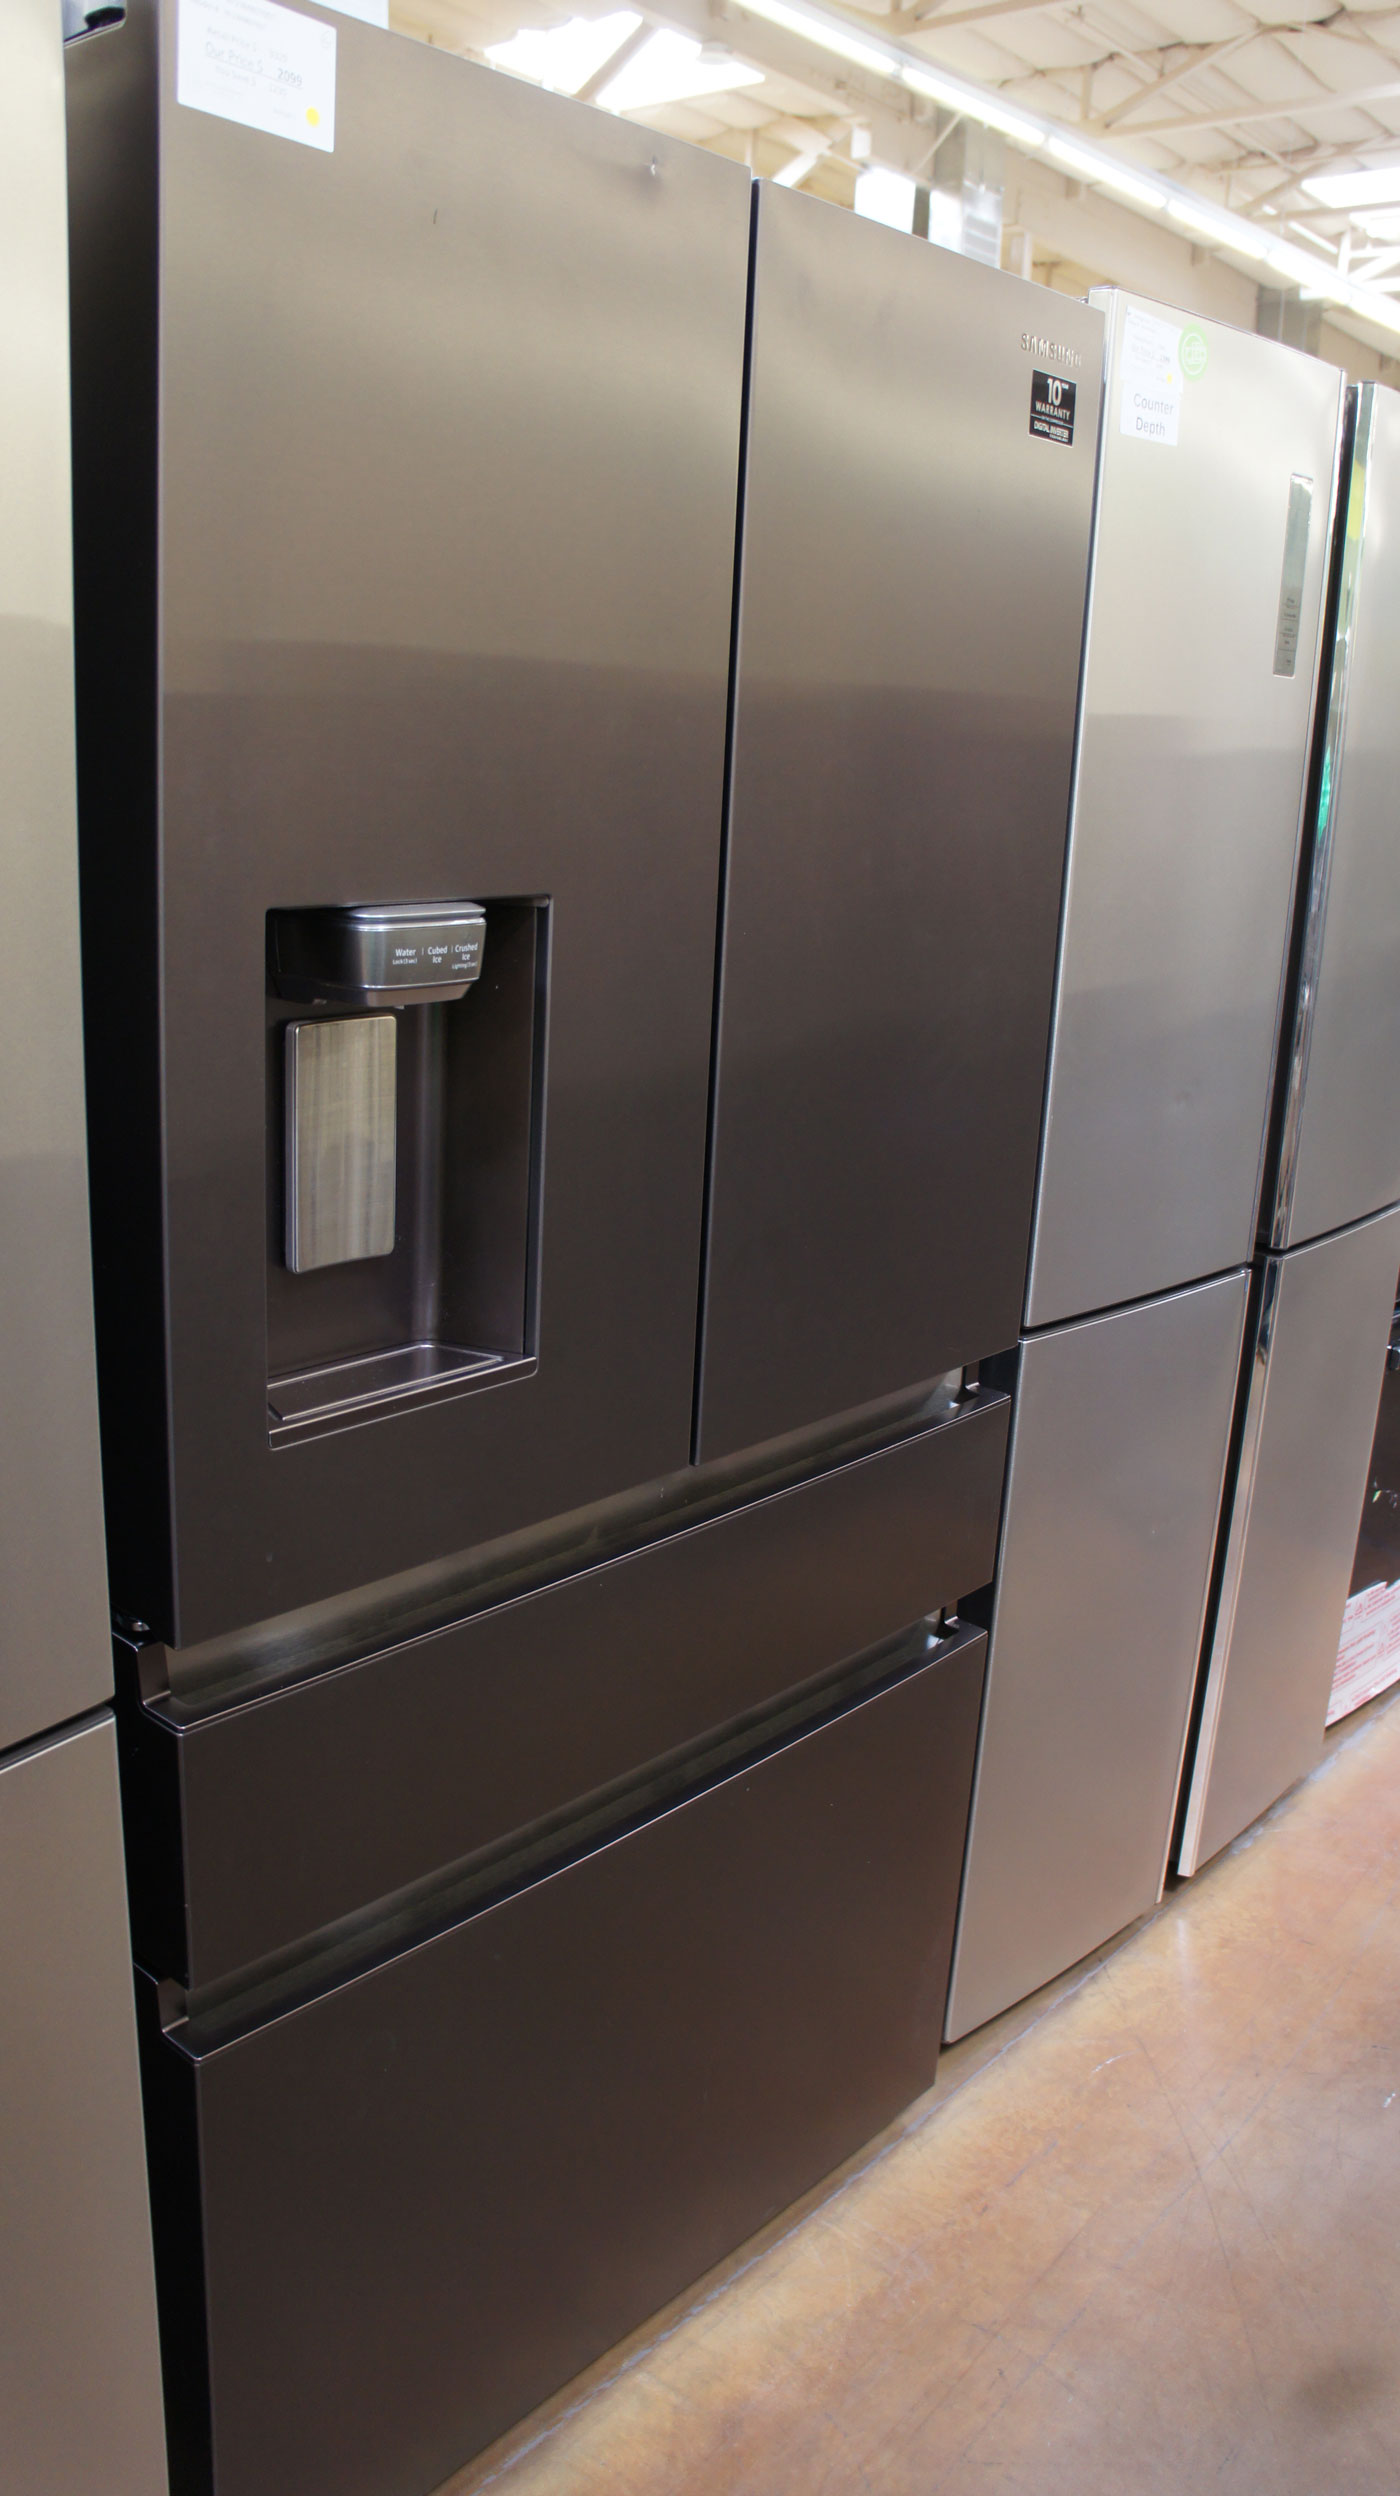 Samsung 4-Door French Door Refrigerator